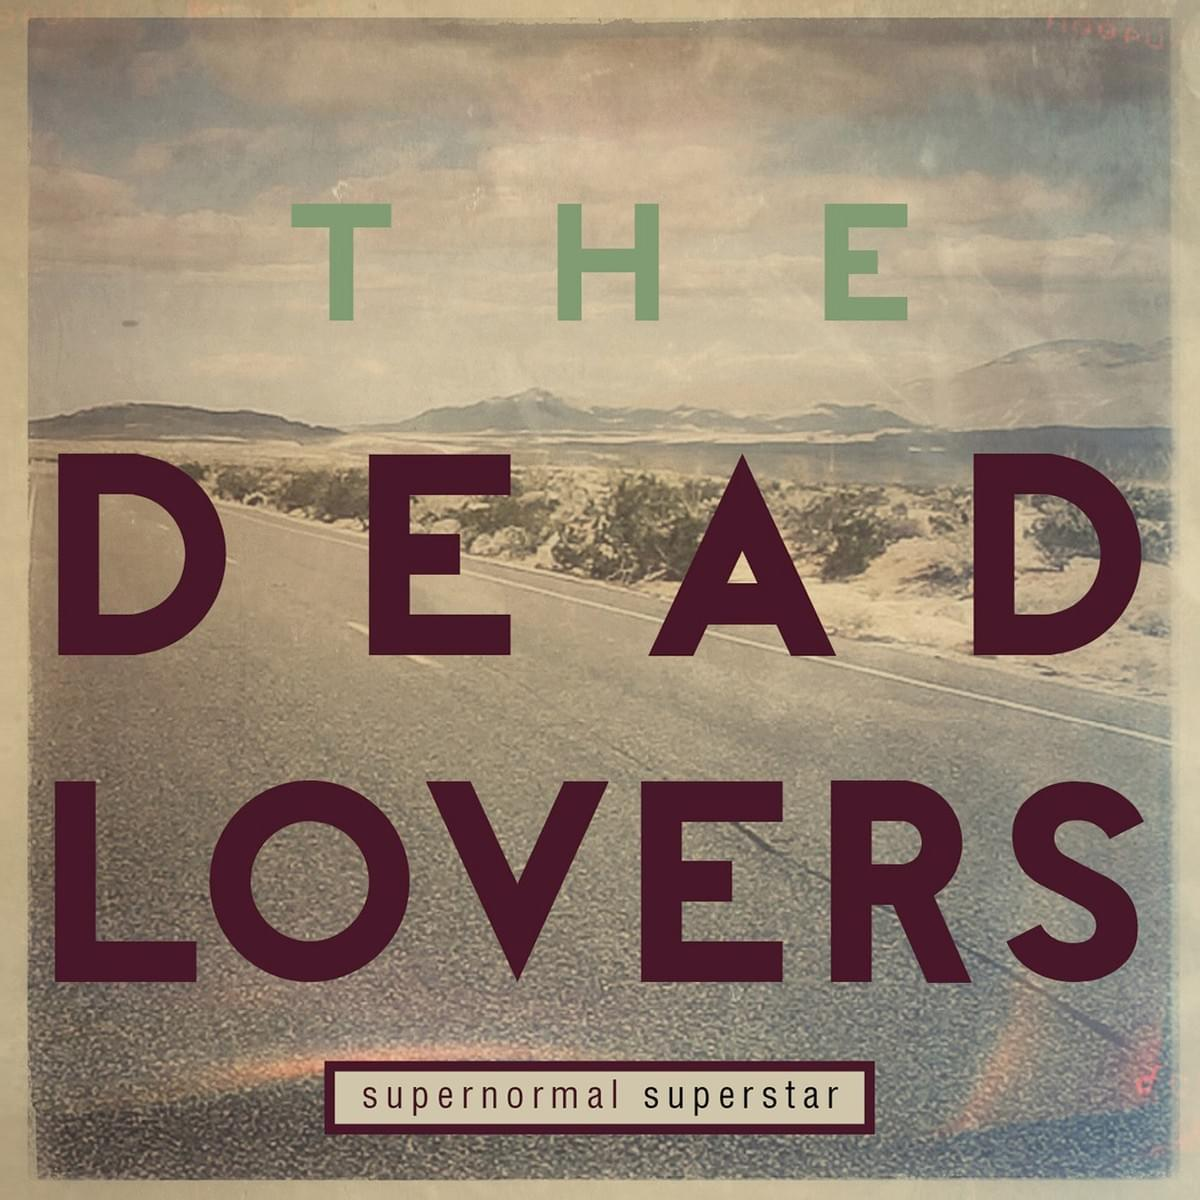 The Dead Lovers - Supernatural Superstar